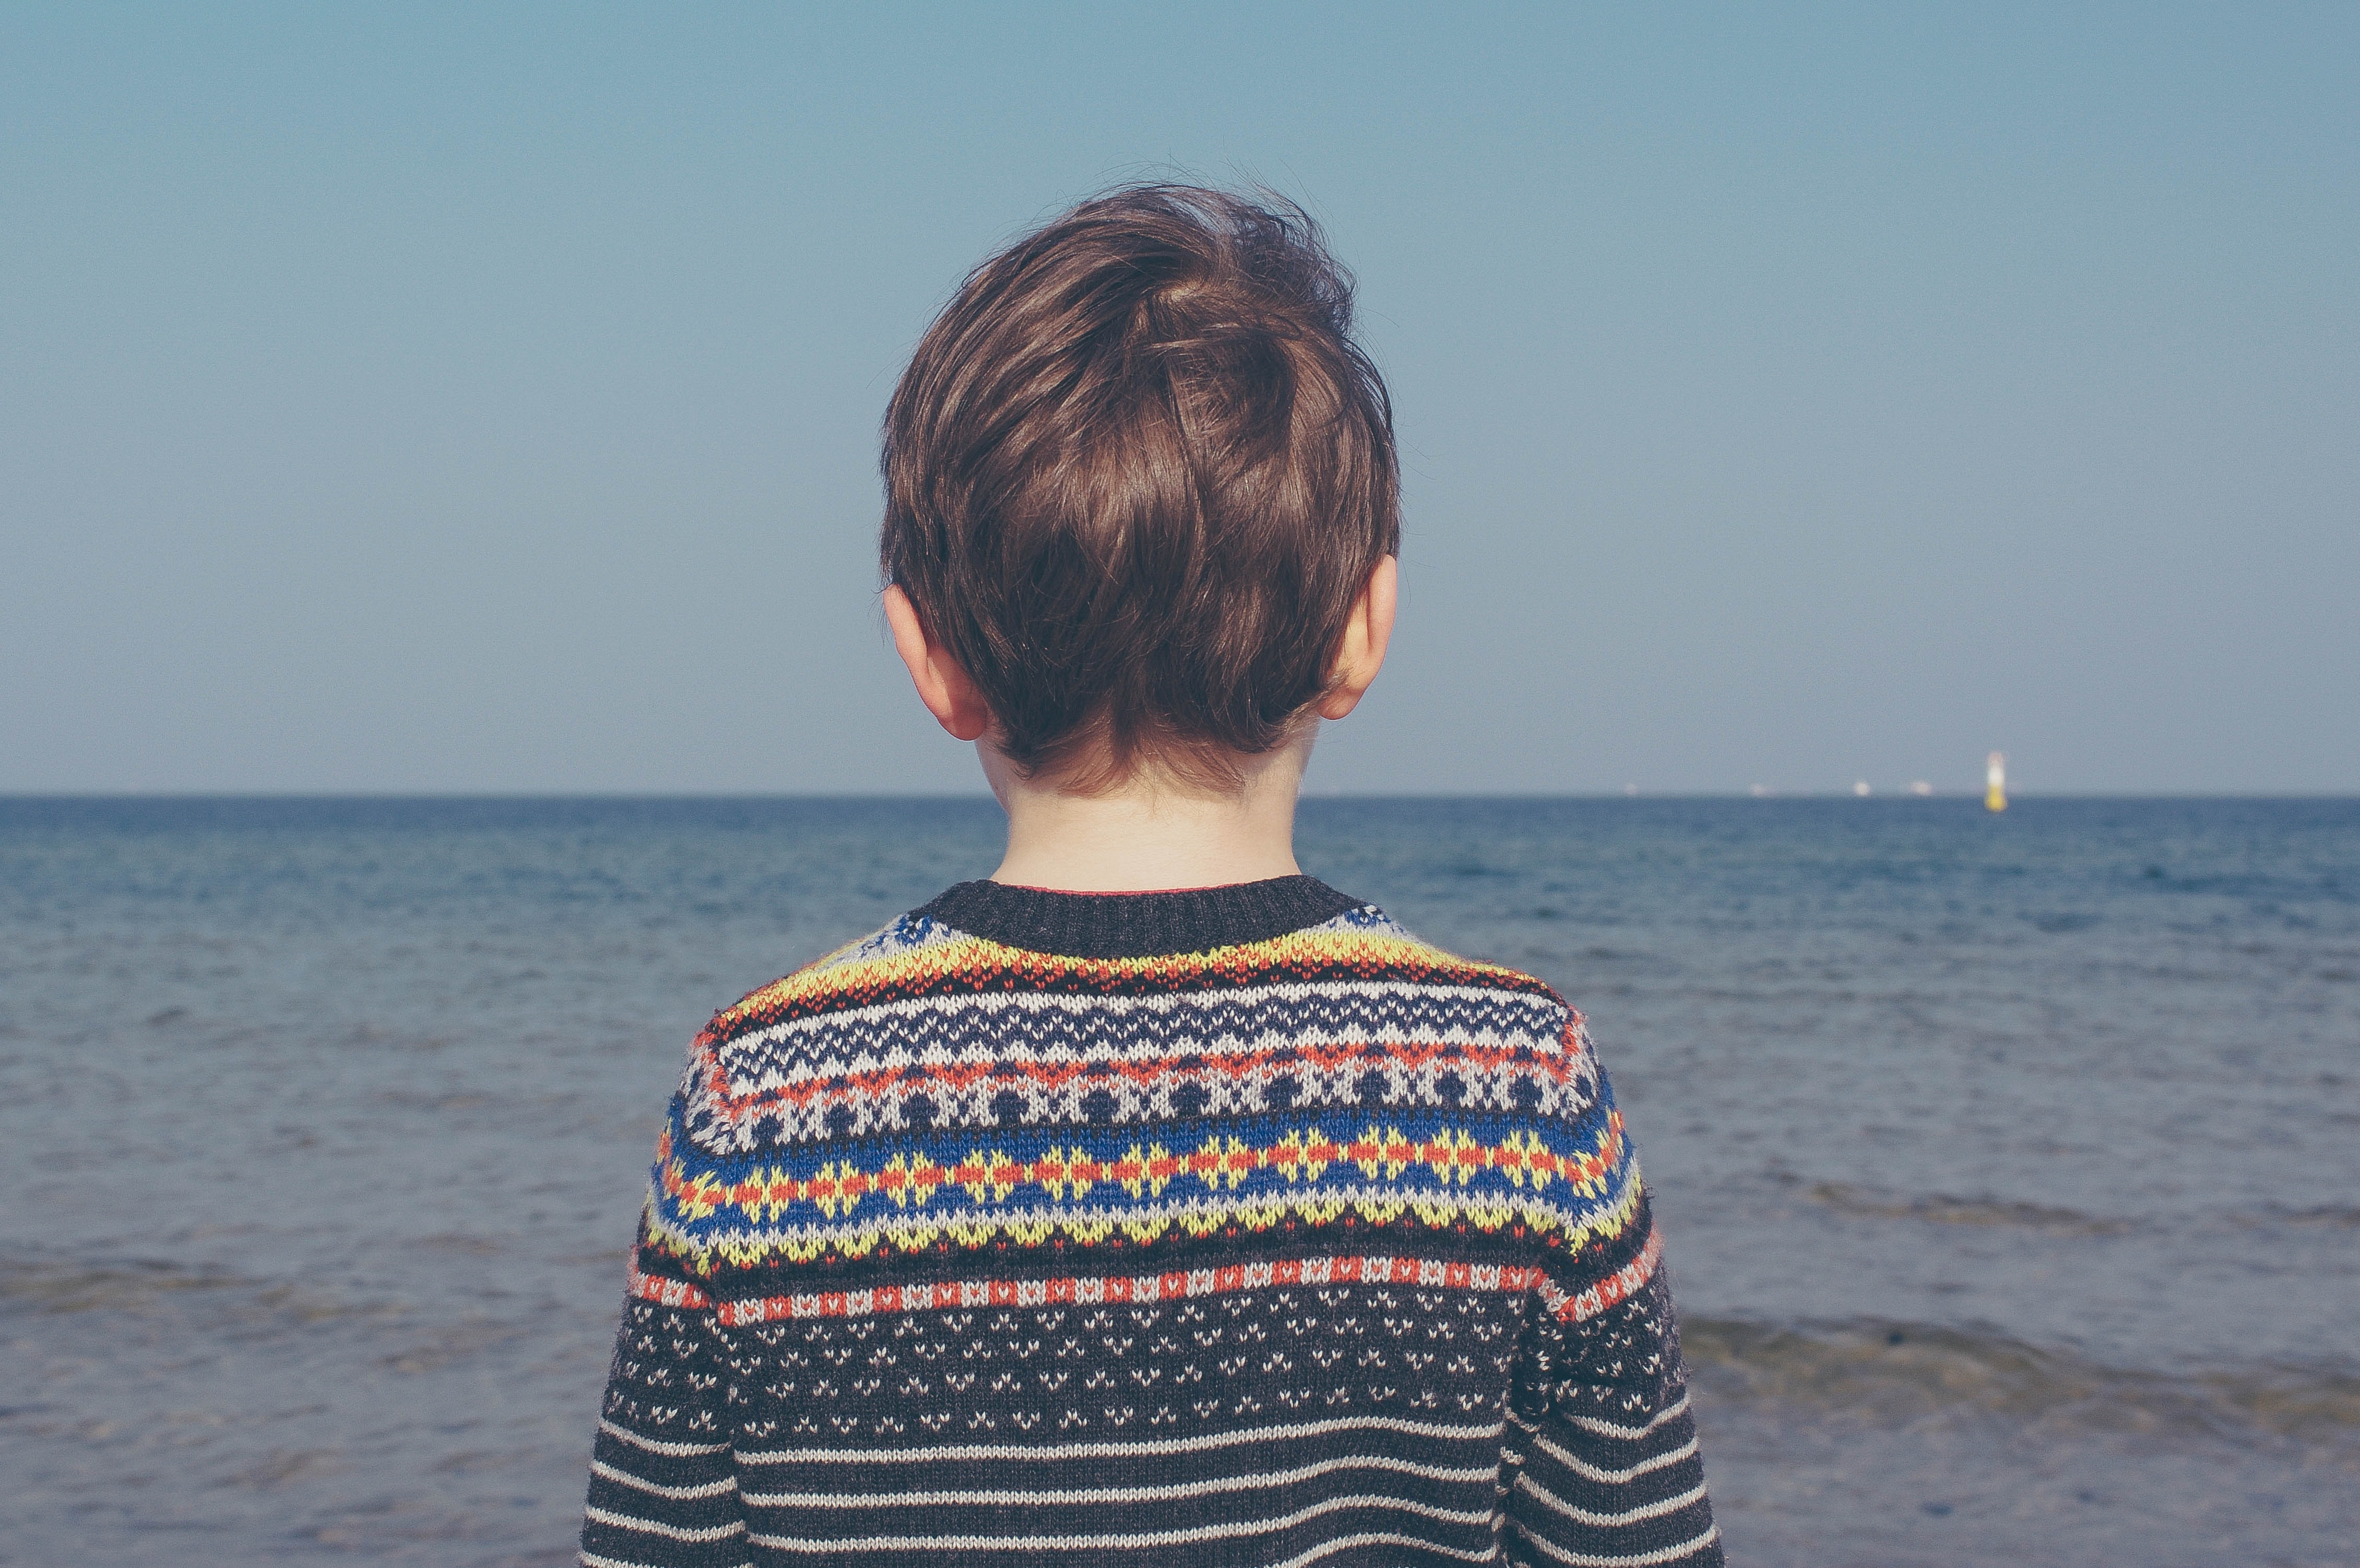 Child in a sweater looking at the ocean in Sopot